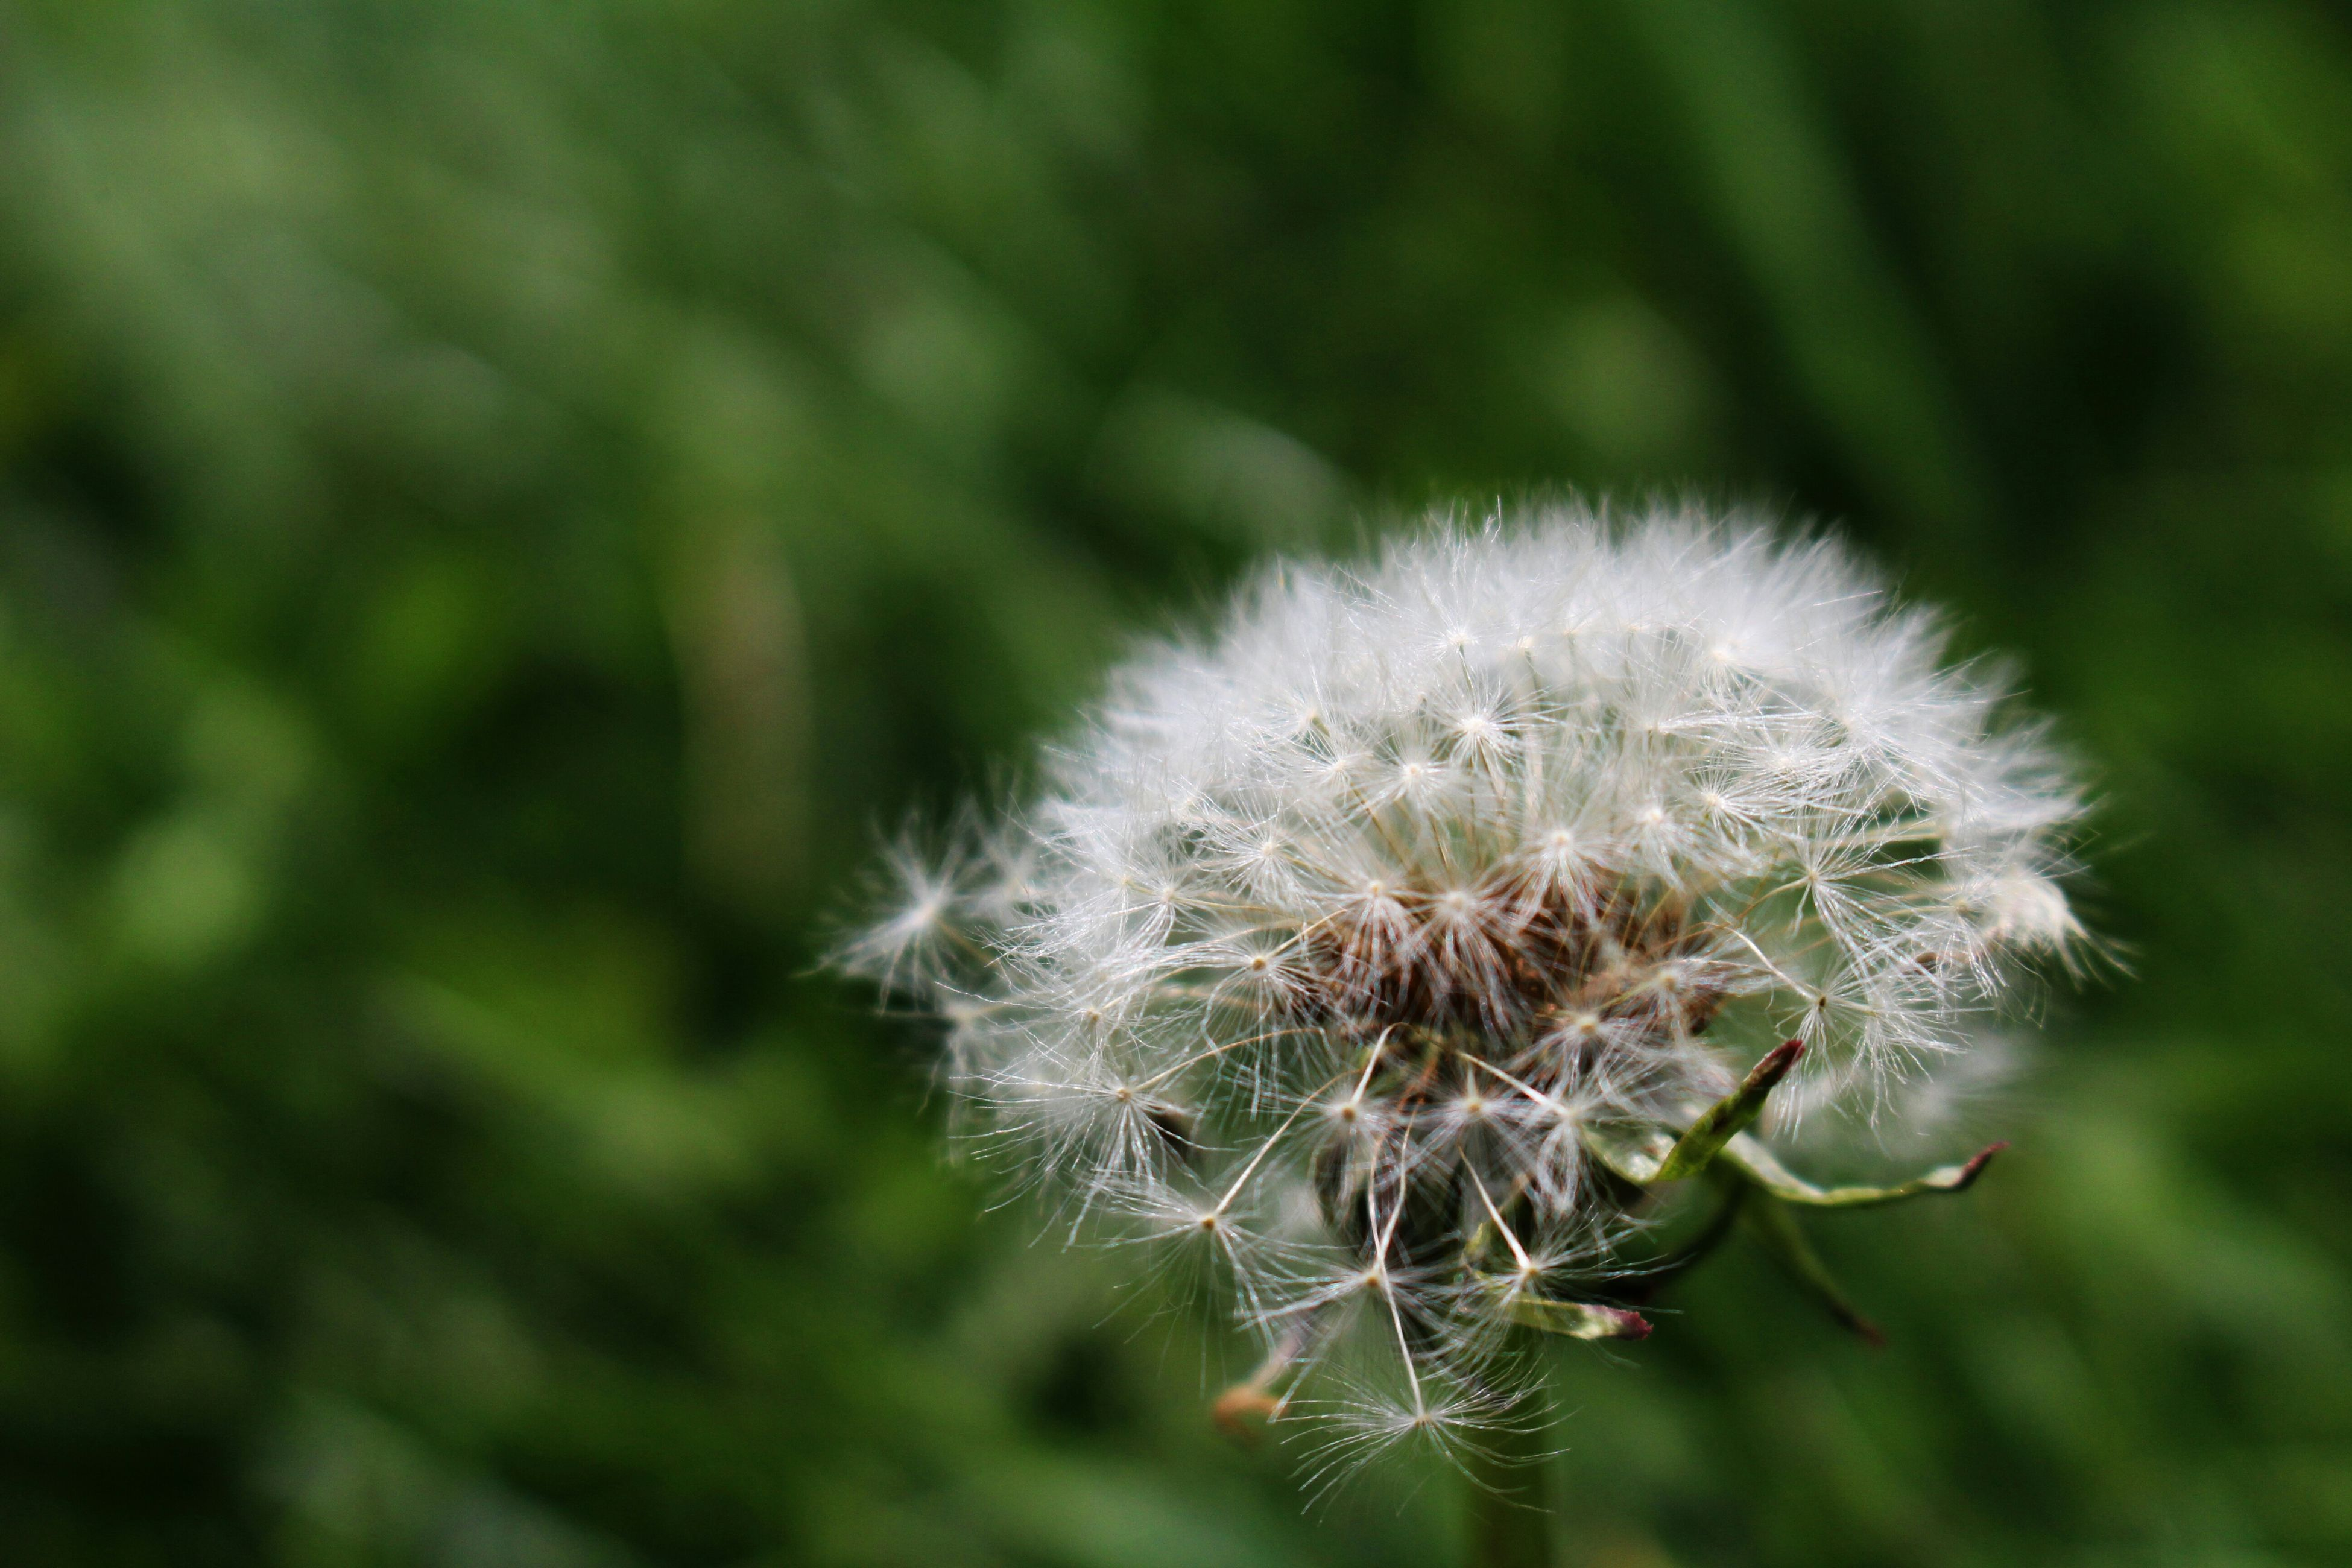 dandelion, flower, fragility, growth, focus on foreground, close-up, freshness, flower head, nature, beauty in nature, plant, softness, single flower, stem, wildflower, uncultivated, selective focus, dandelion seed, seed, day